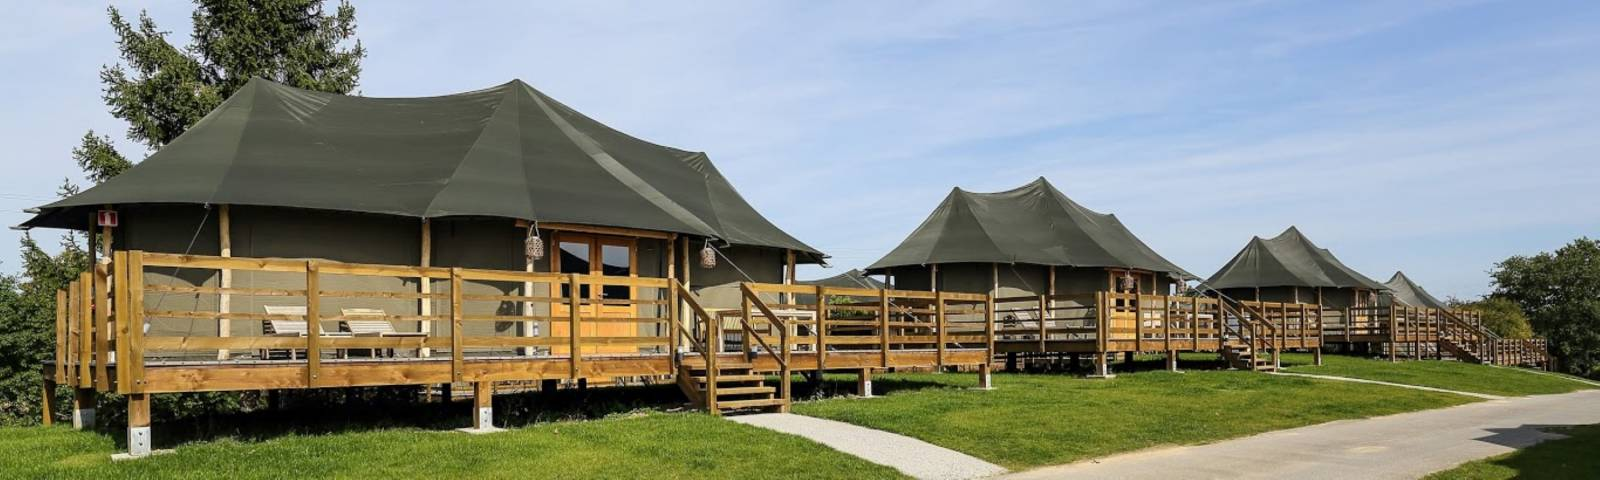 Durbuy Adventure-Glamping-00033 (Custom)